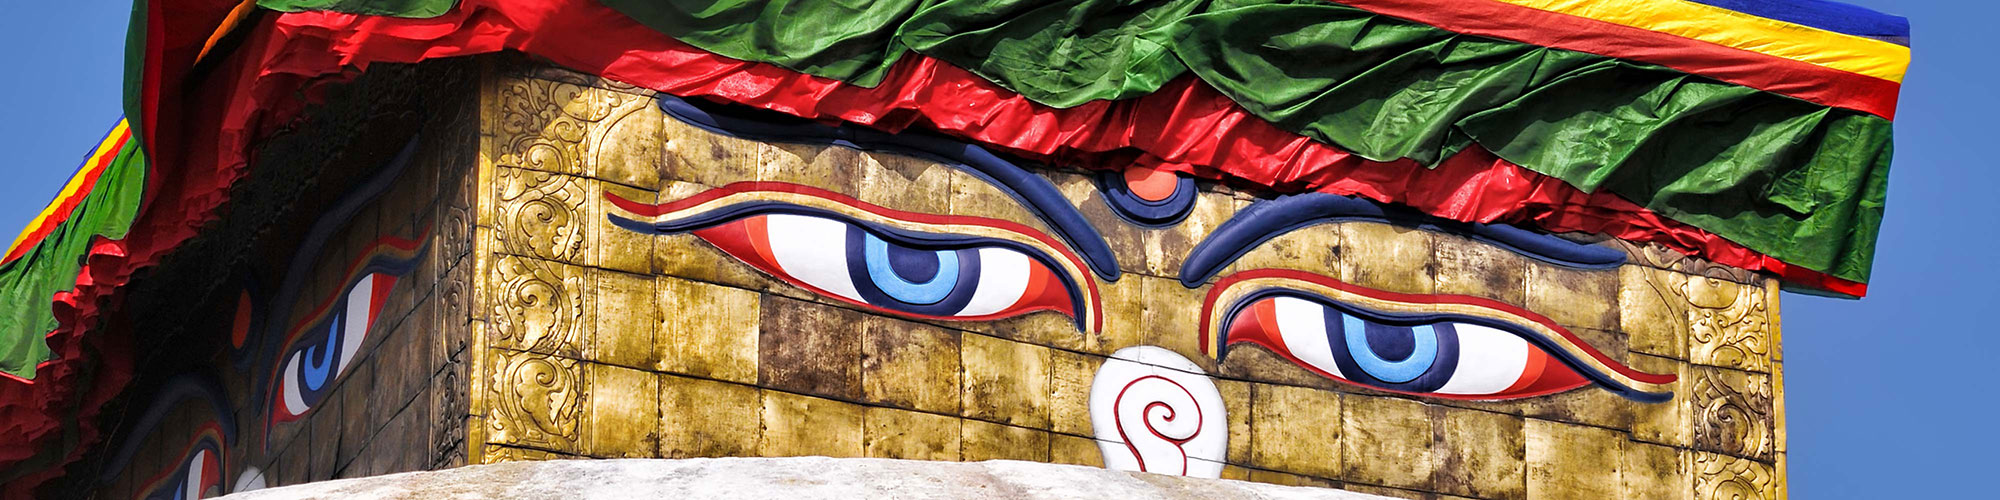 Nepalese Statue with Big Eyes